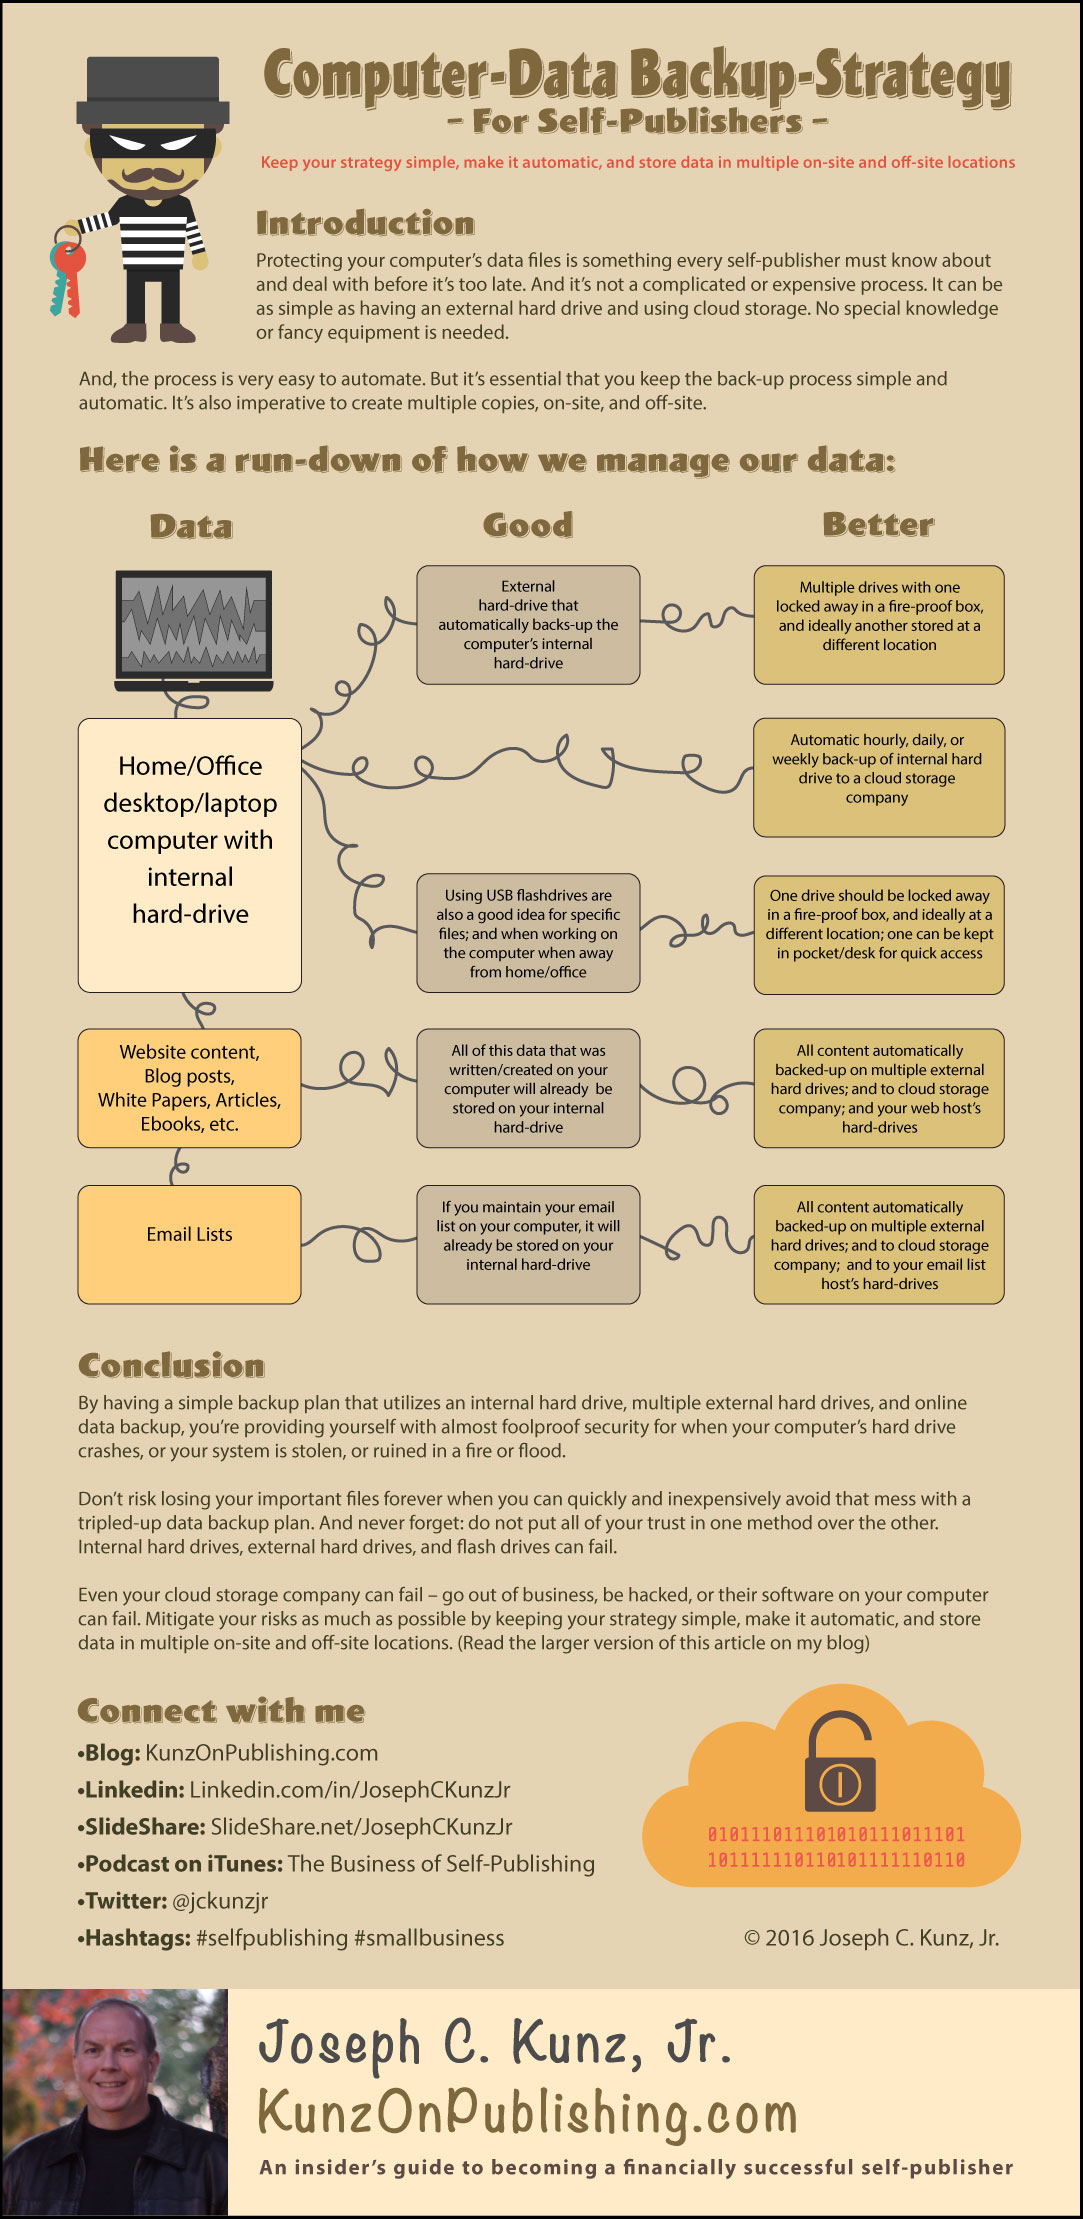 Computer-Data Backup-Strategy For Self-Publishers (Infographic) by Joseph C. Kunz, Jr.